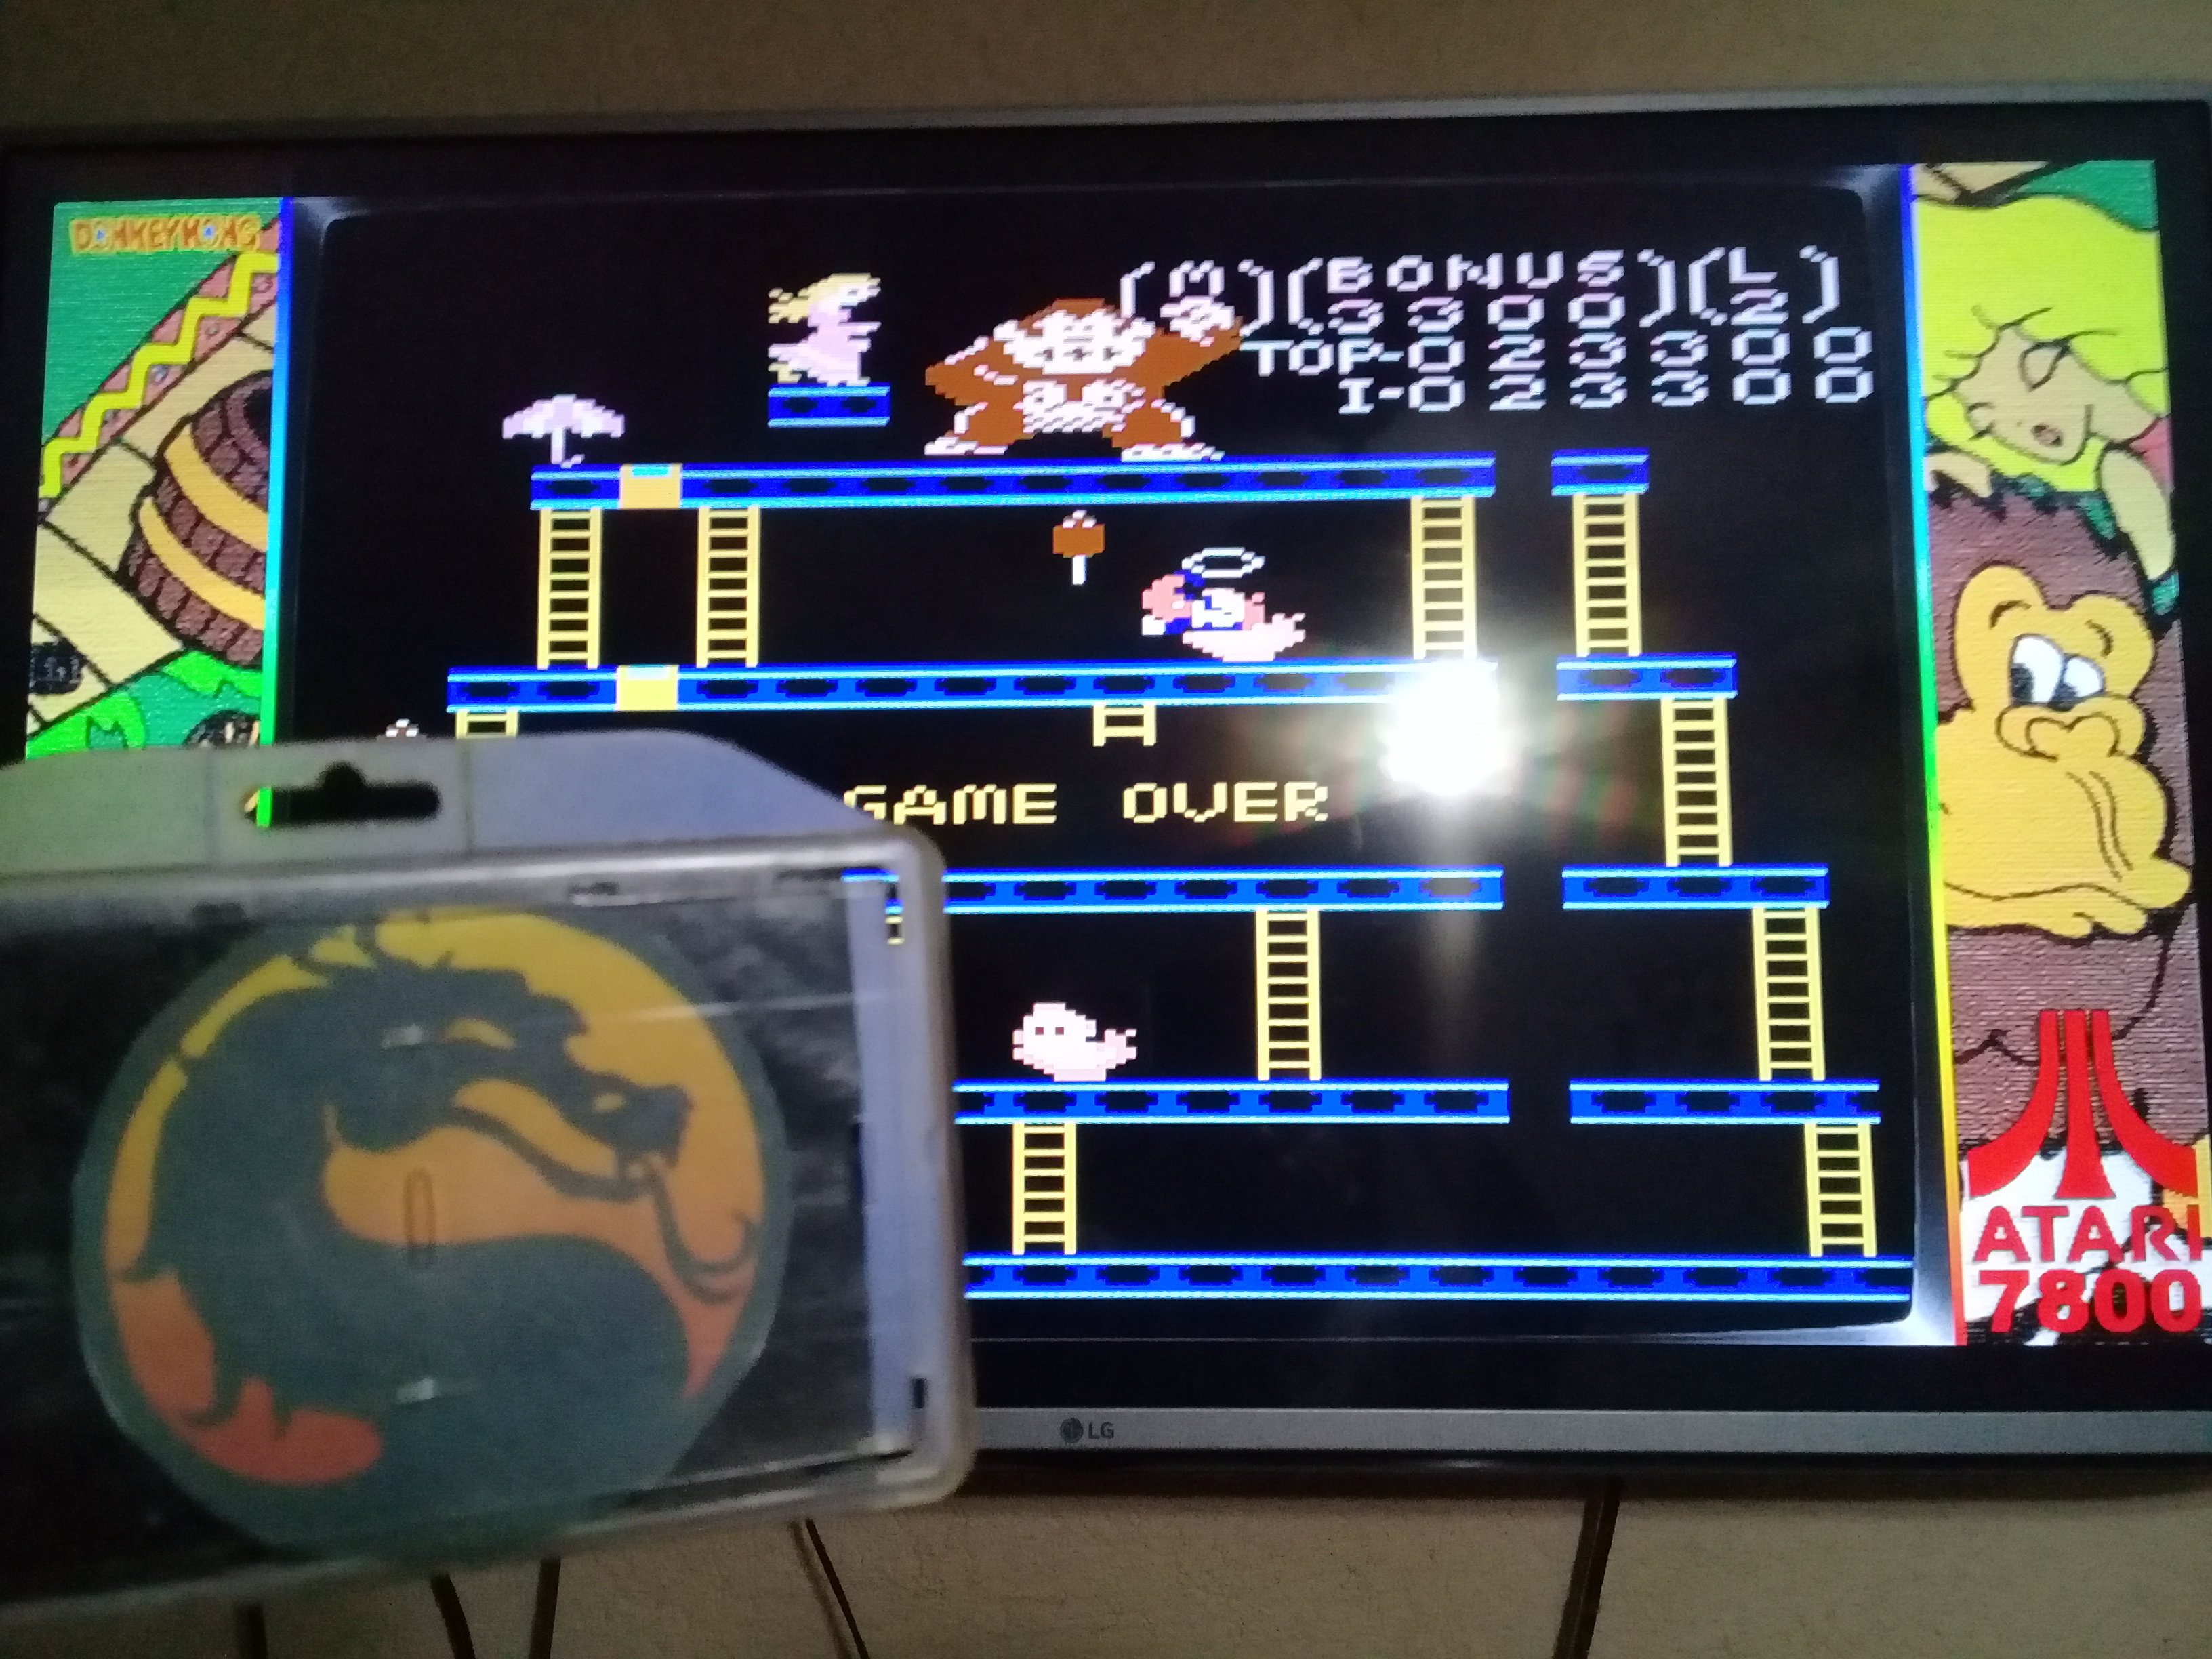 omargeddon: Donkey Kong: Expert (Atari 7800 Emulated) 23,300 points on 2020-06-20 20:07:32